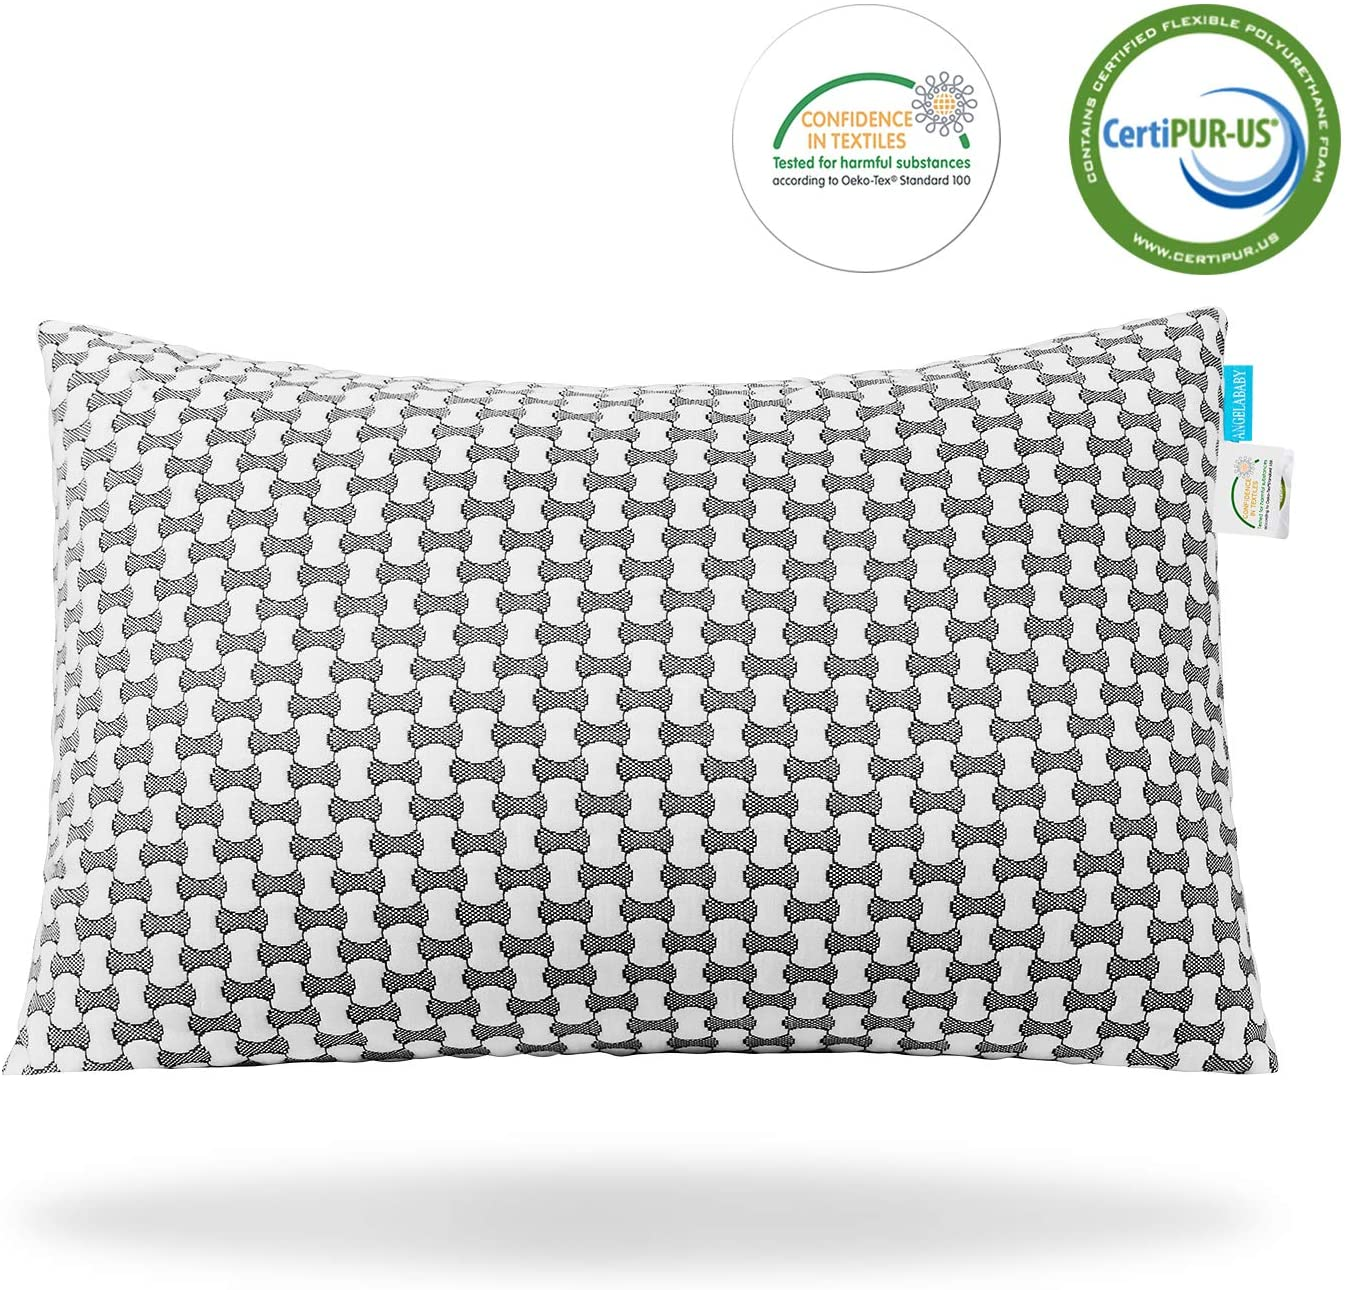 ANGELABABY Adjustable Pillow, Shredded Memory Foam with Cooling Feeling, Removable Washable Cover from Bamboo Derived Rayon, Ultra-Luxury Premium Bed Pillow for Sleeping (Queen)